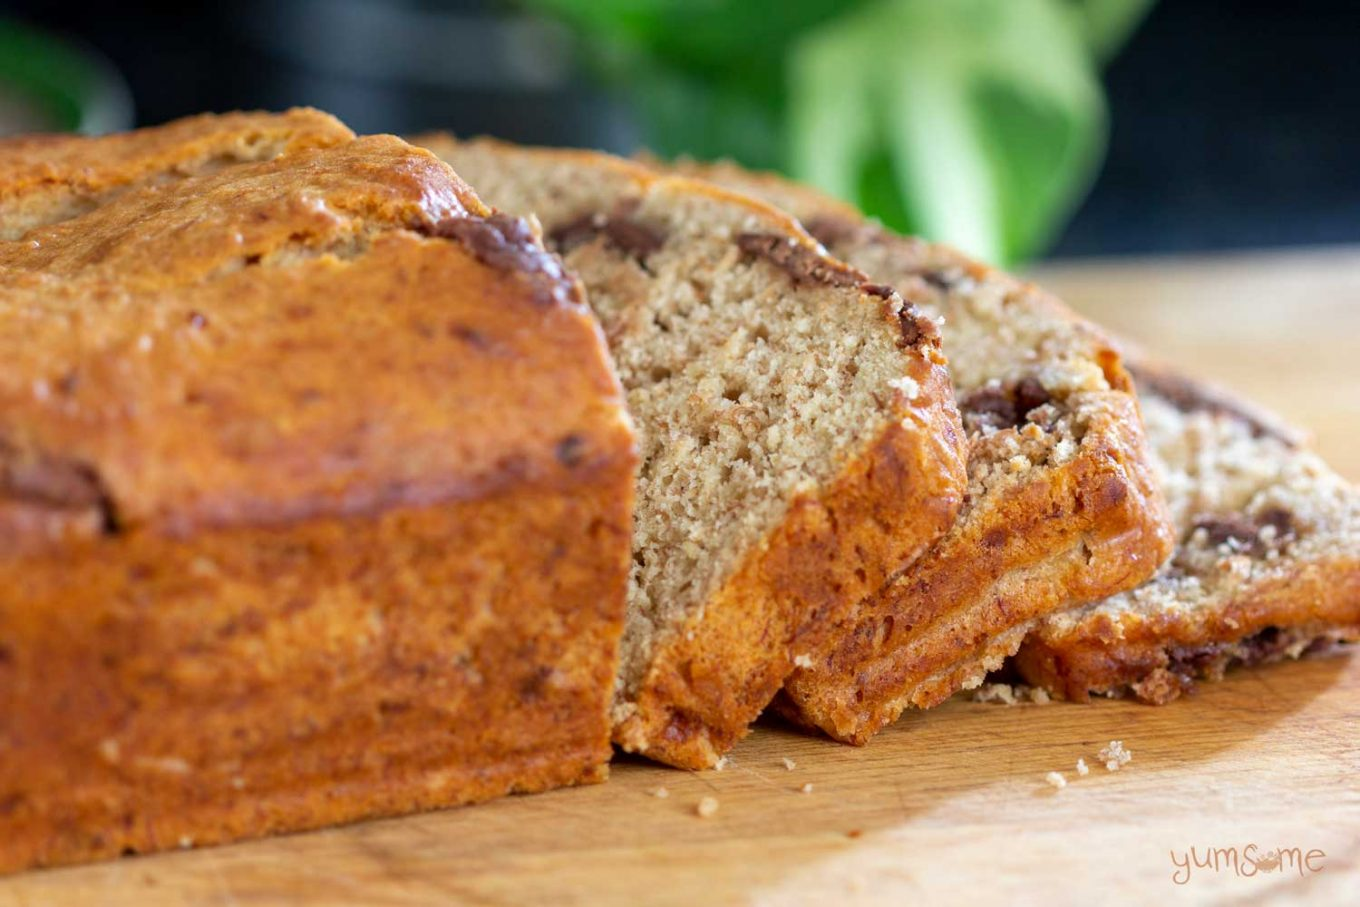 A loaf of chocolate chip banana bread on a wooden board.